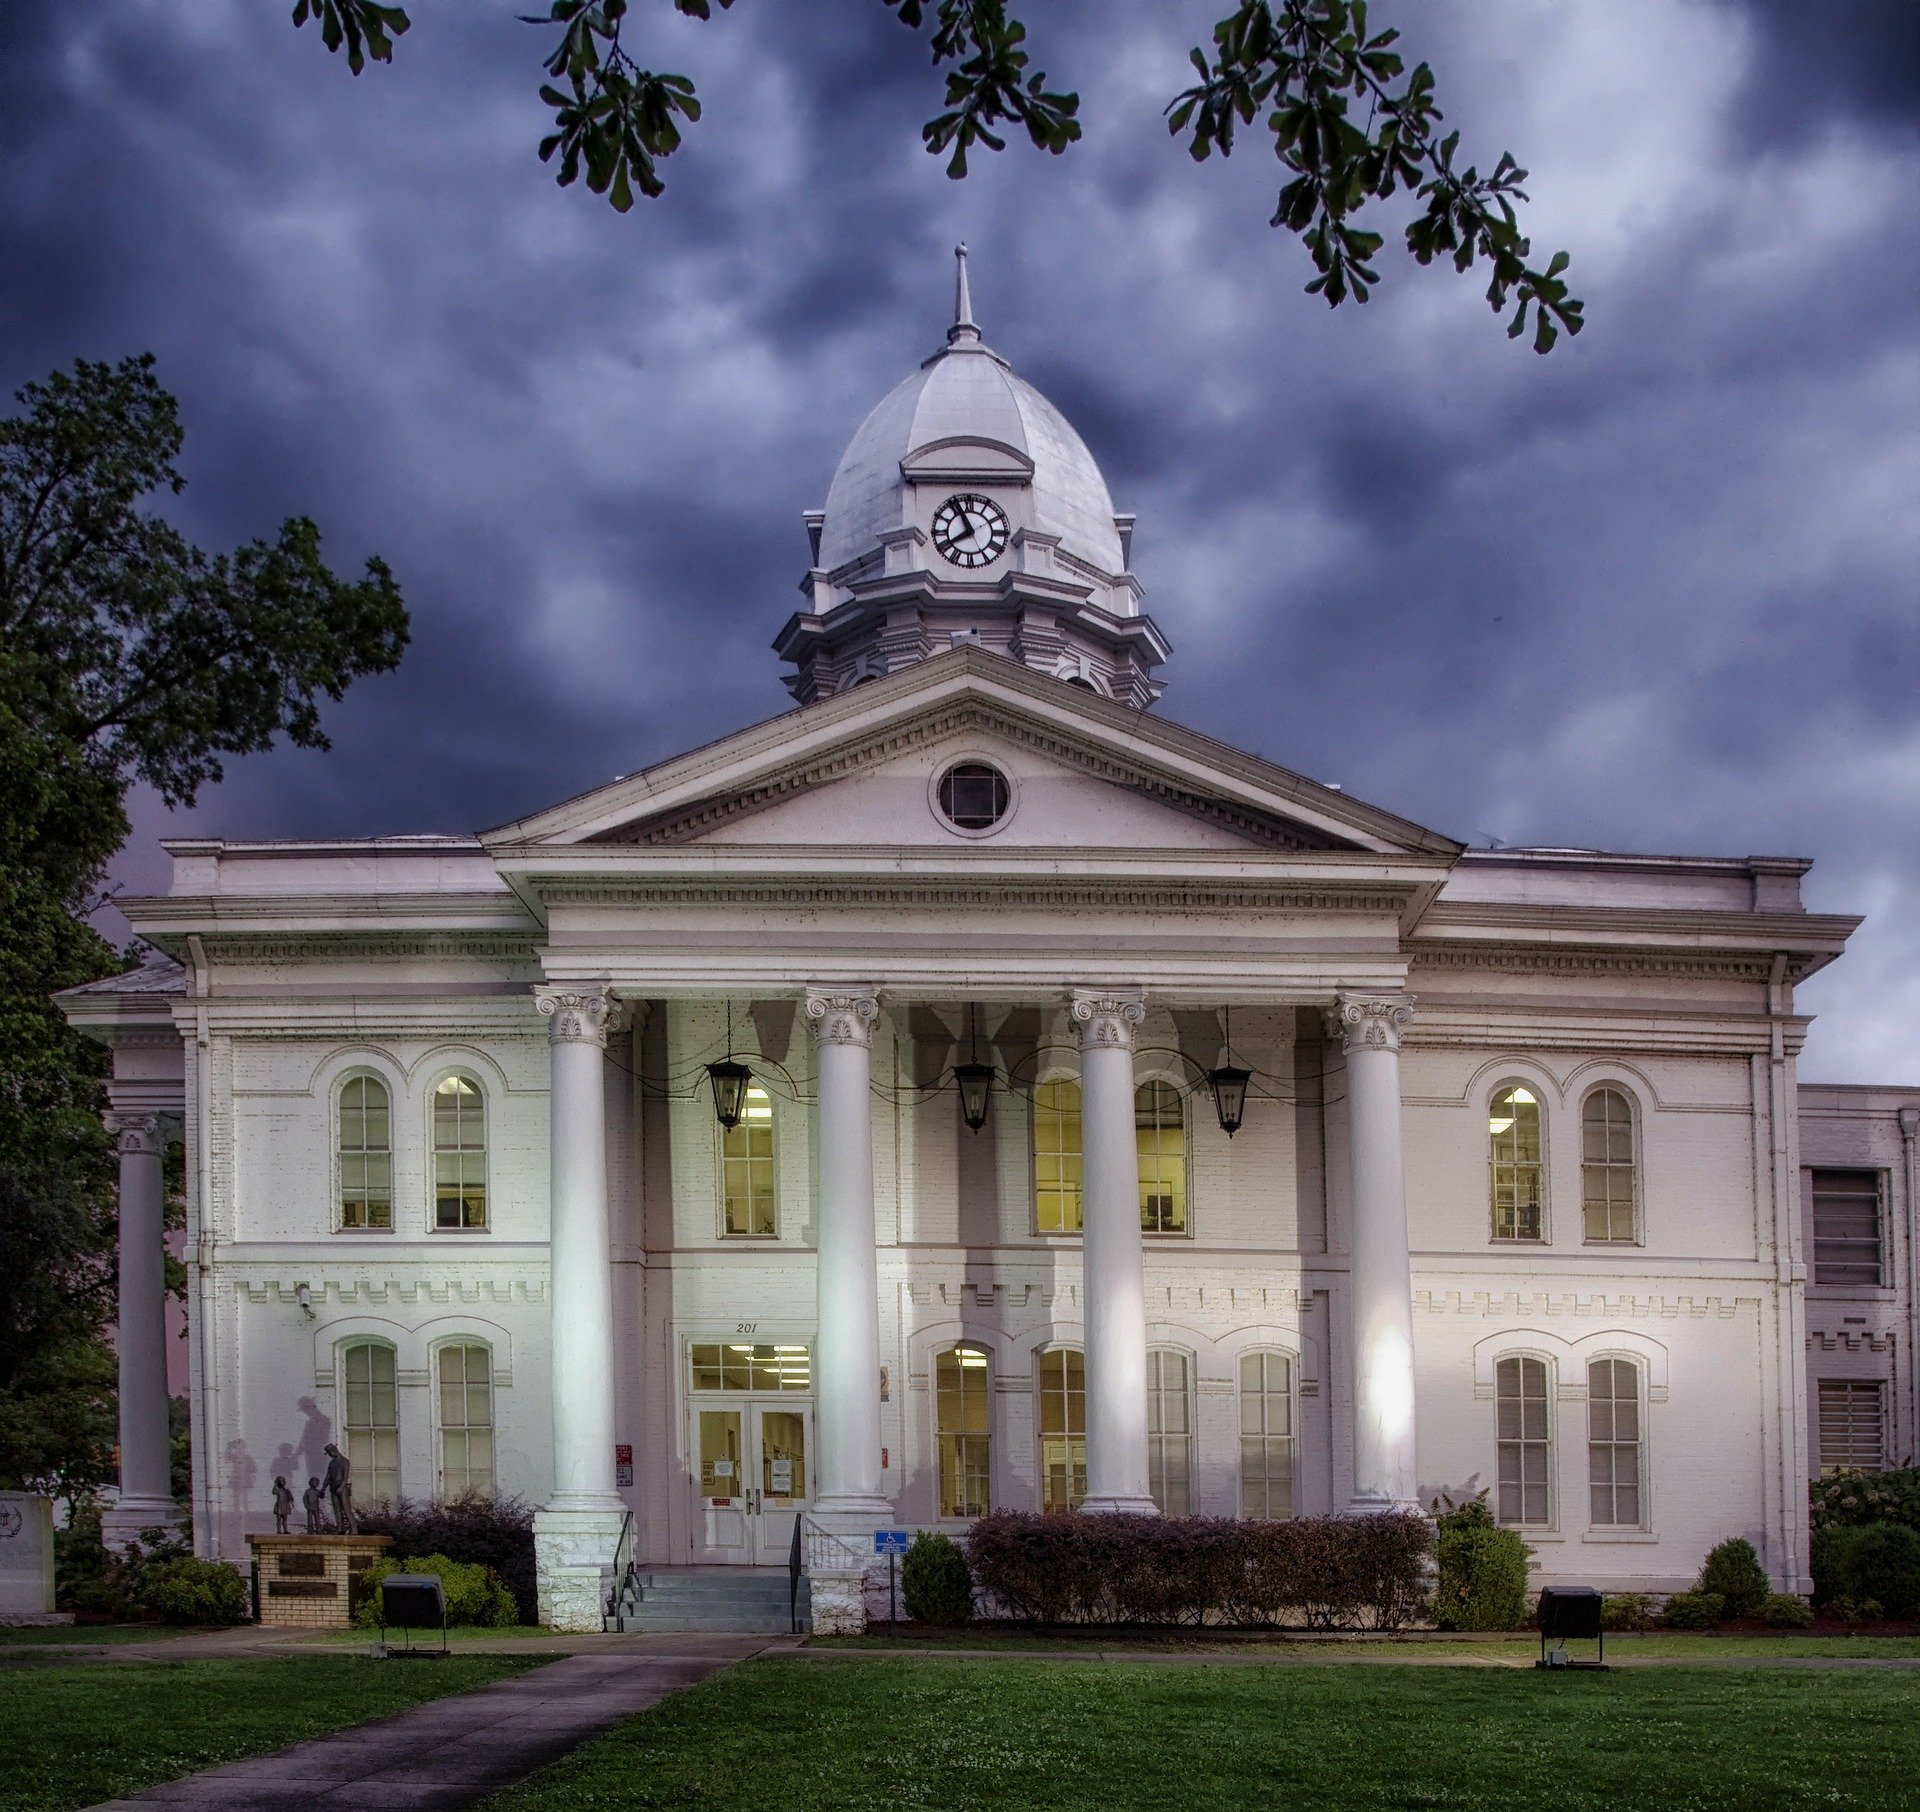 Pictured - An Alabama Courthouse   Source: Pixabay